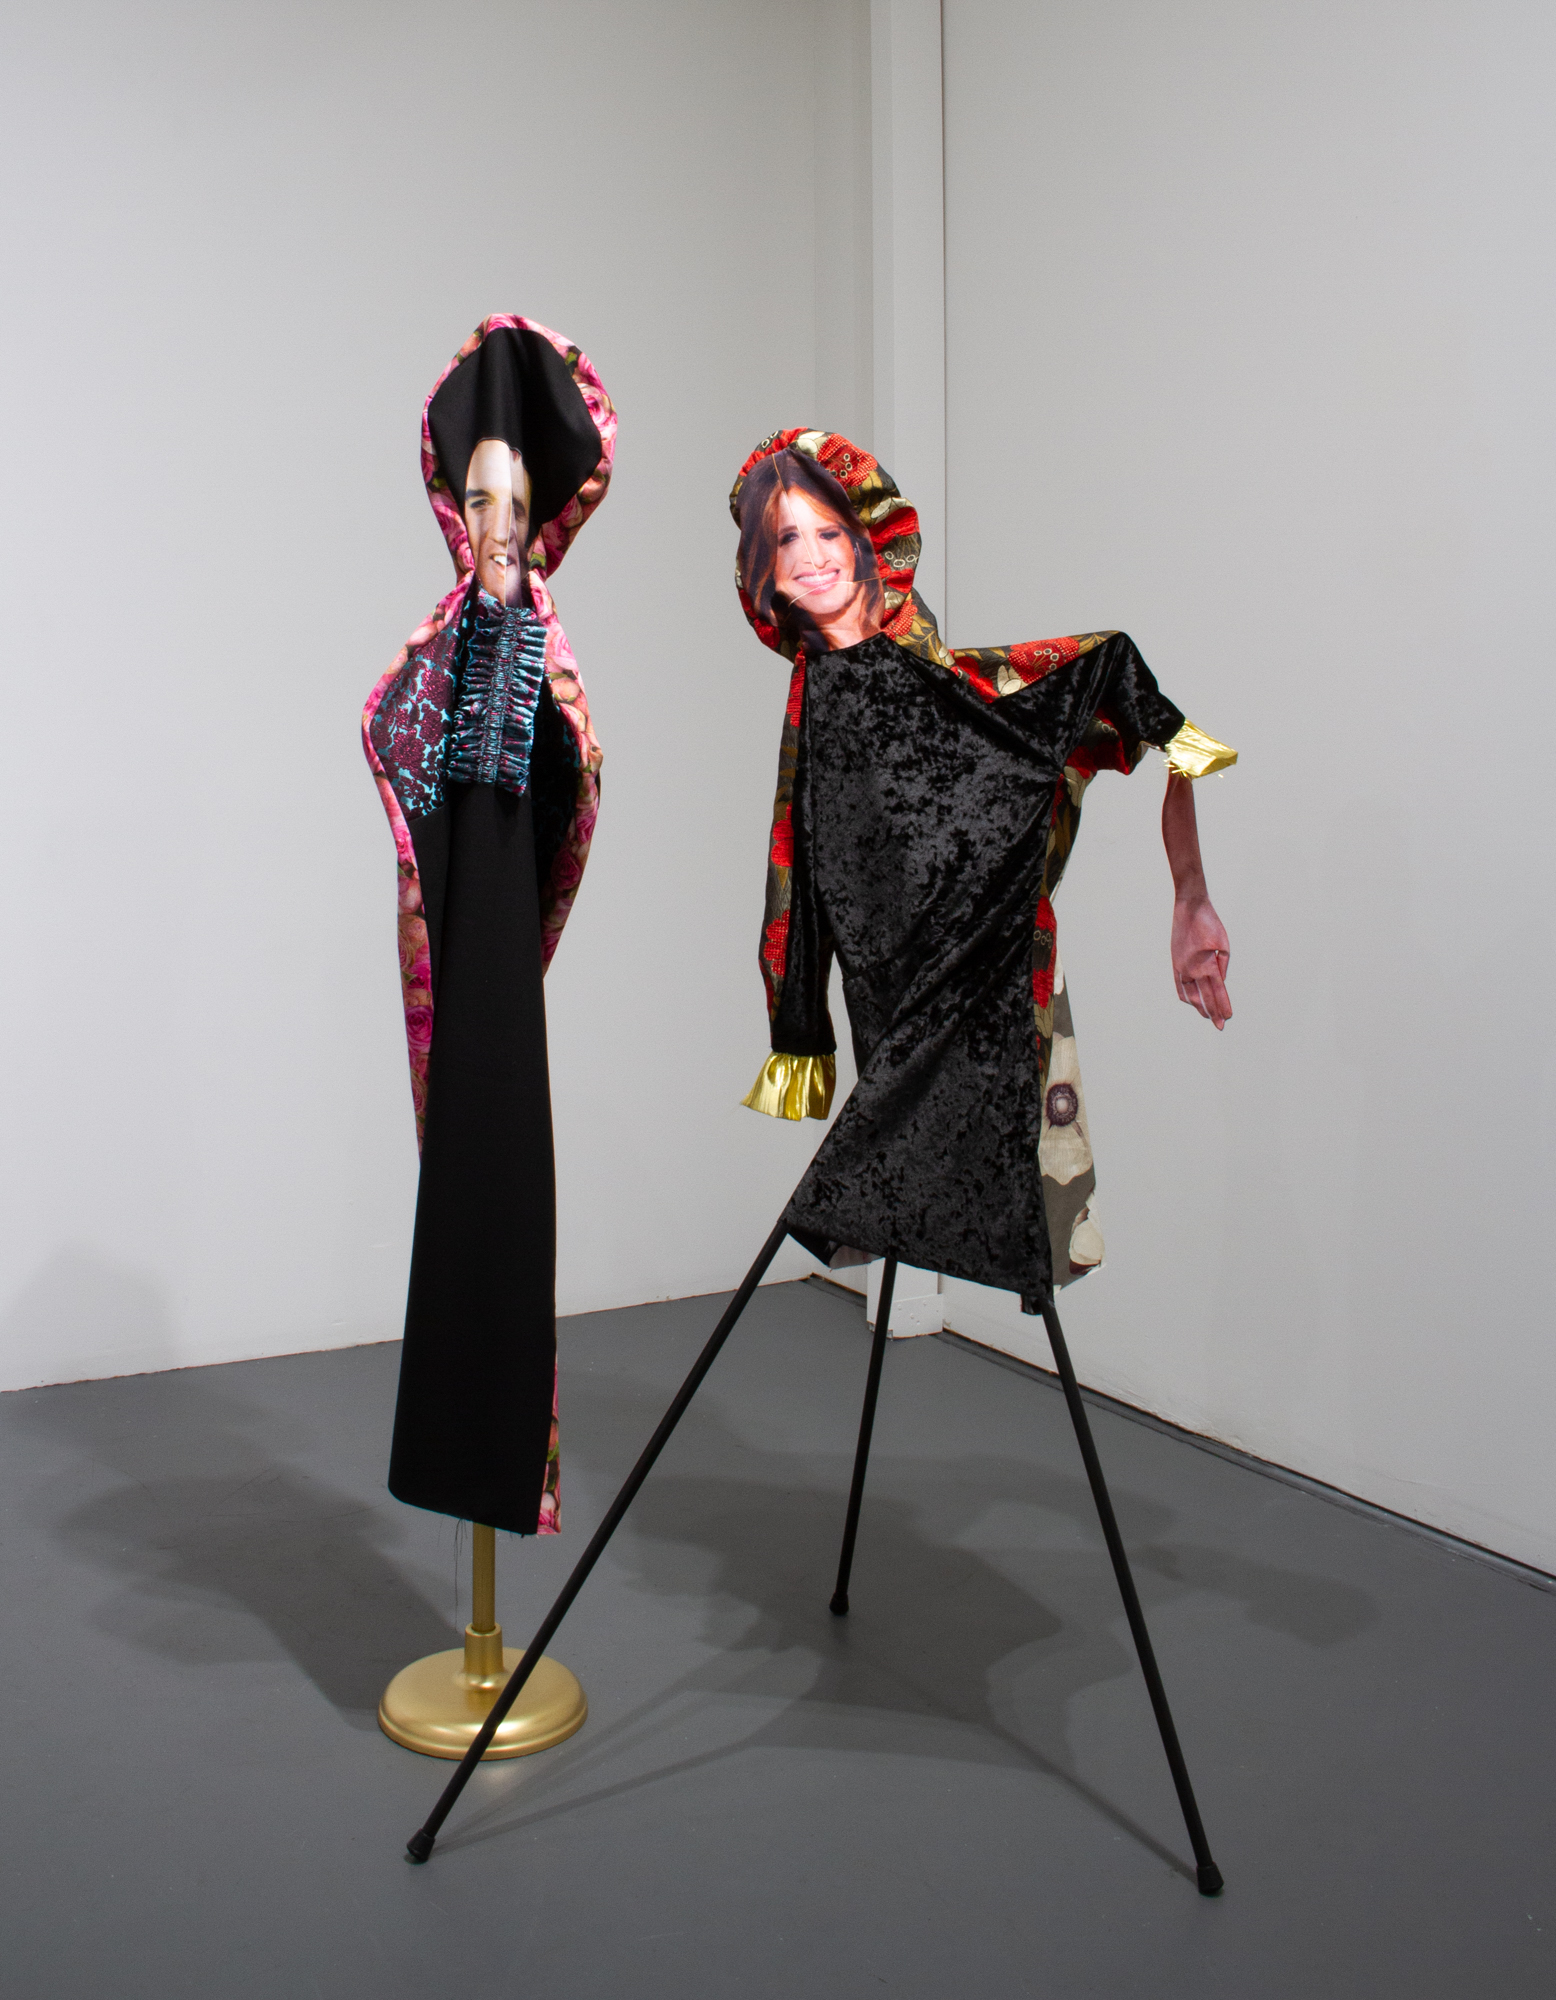 Bean Gilsdorf, Left:  Thin King,  2018, Wool, polyester, brocade, cotton, wood, paint, flag stand, approx. 72 x 12 x 12 in. Right:  MT,  2018, Velvet, cotton, polyester, chenille brocade, wood, paint, approx. 66 x 37 x 29 in.